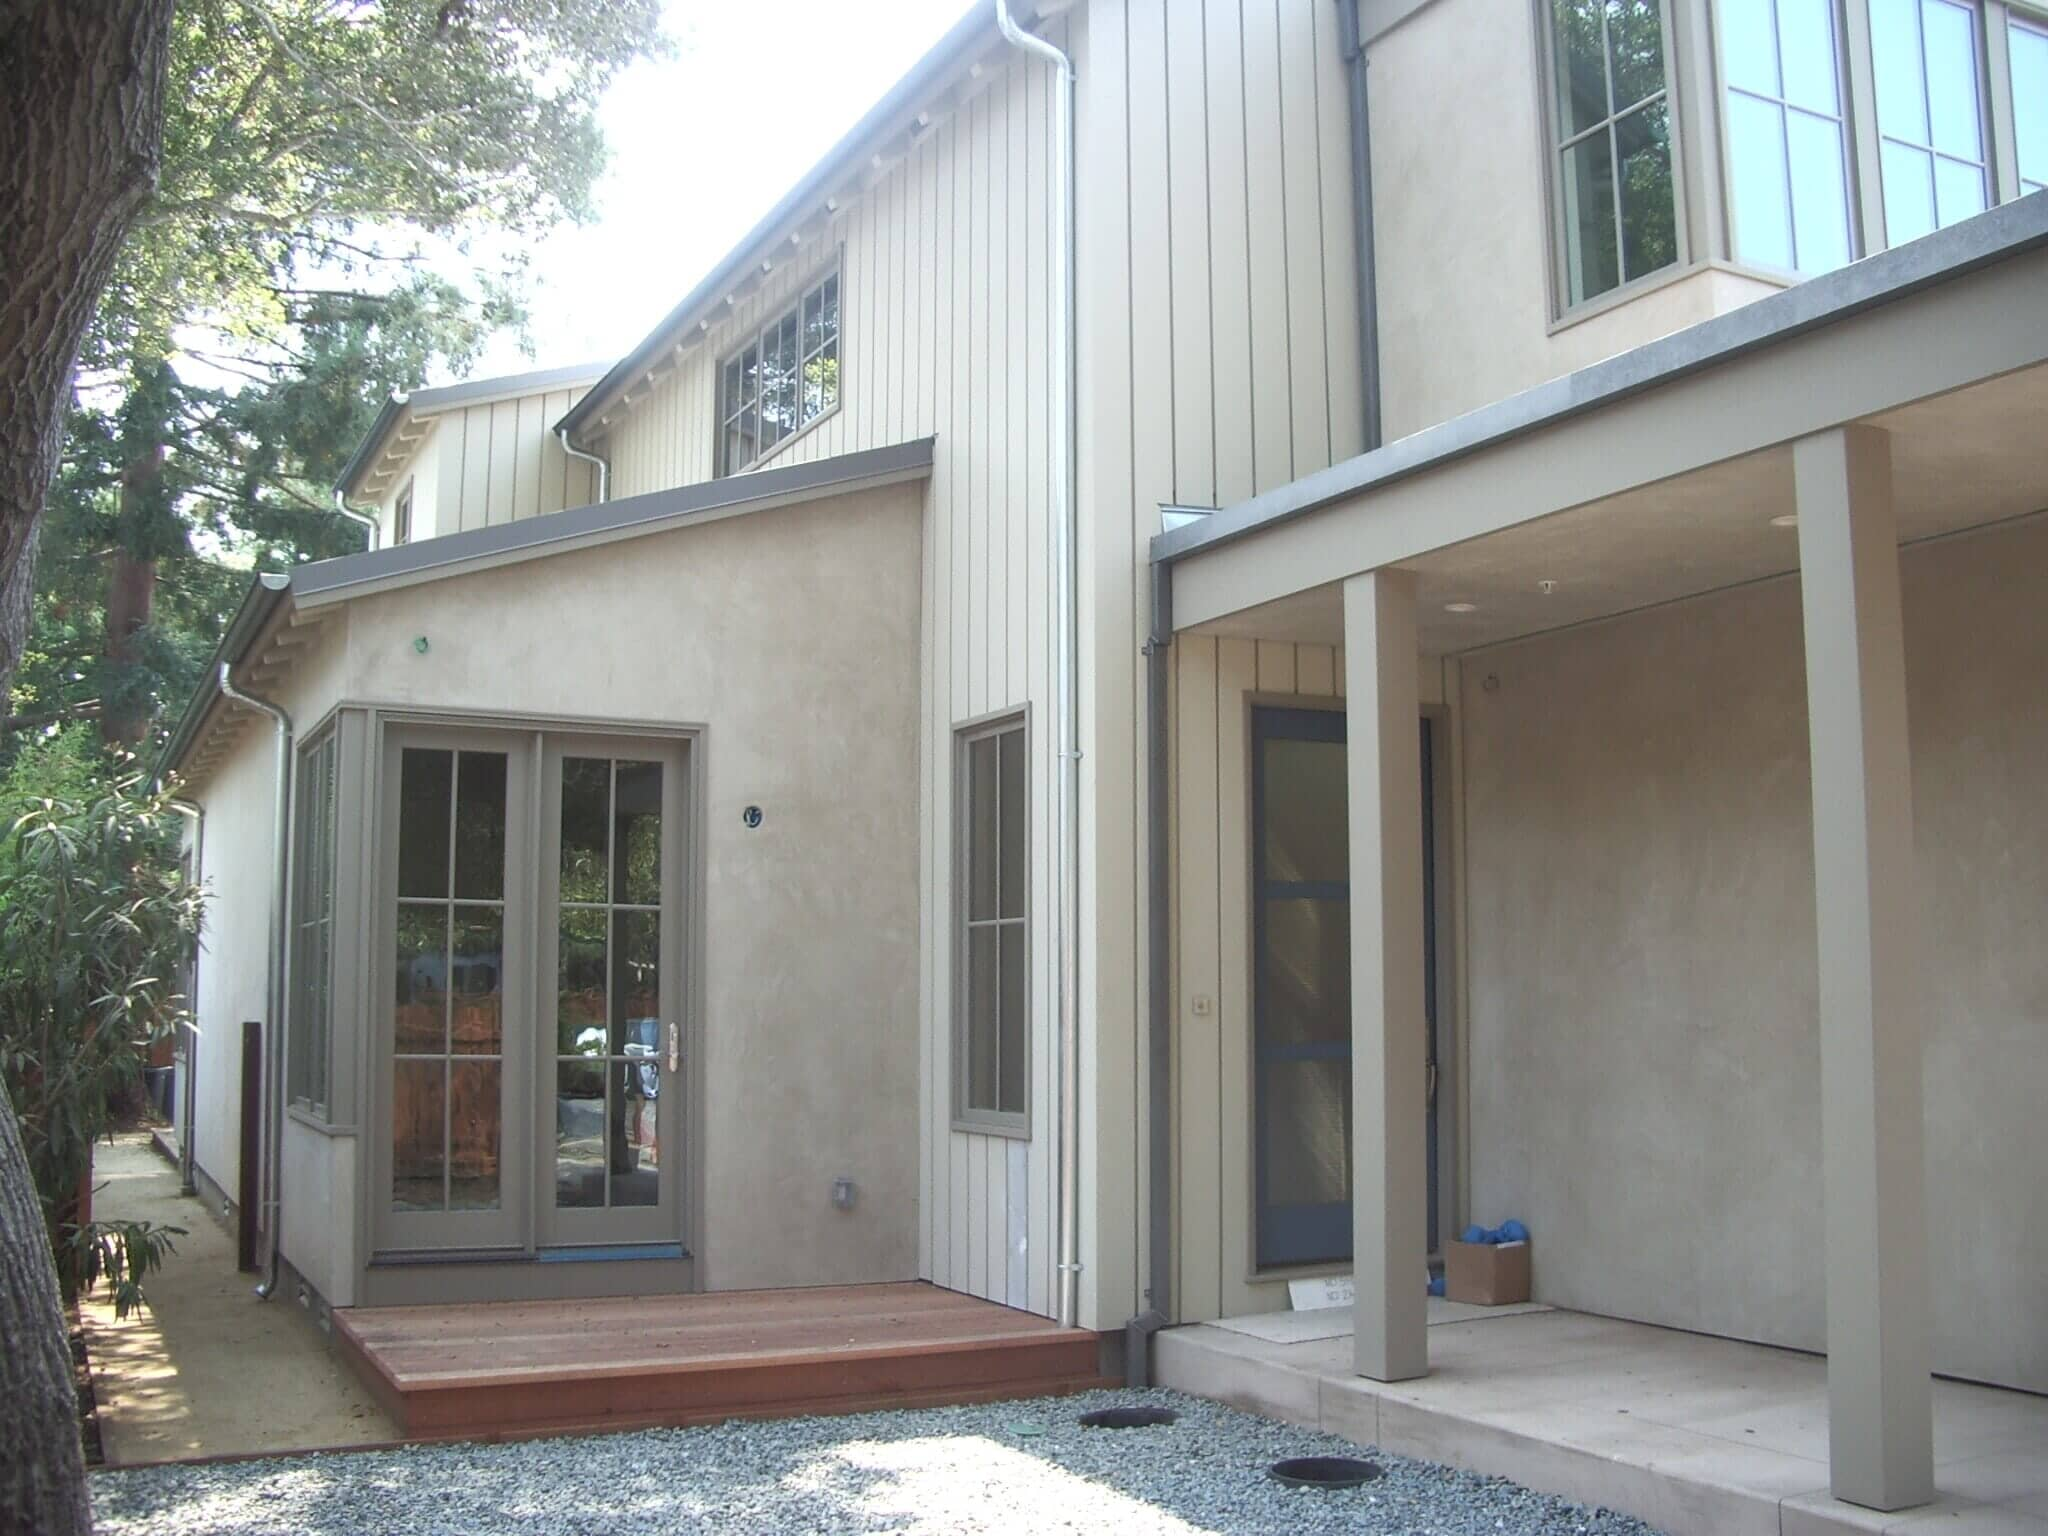 James Witt Job, Select Windows, Los Altos, California